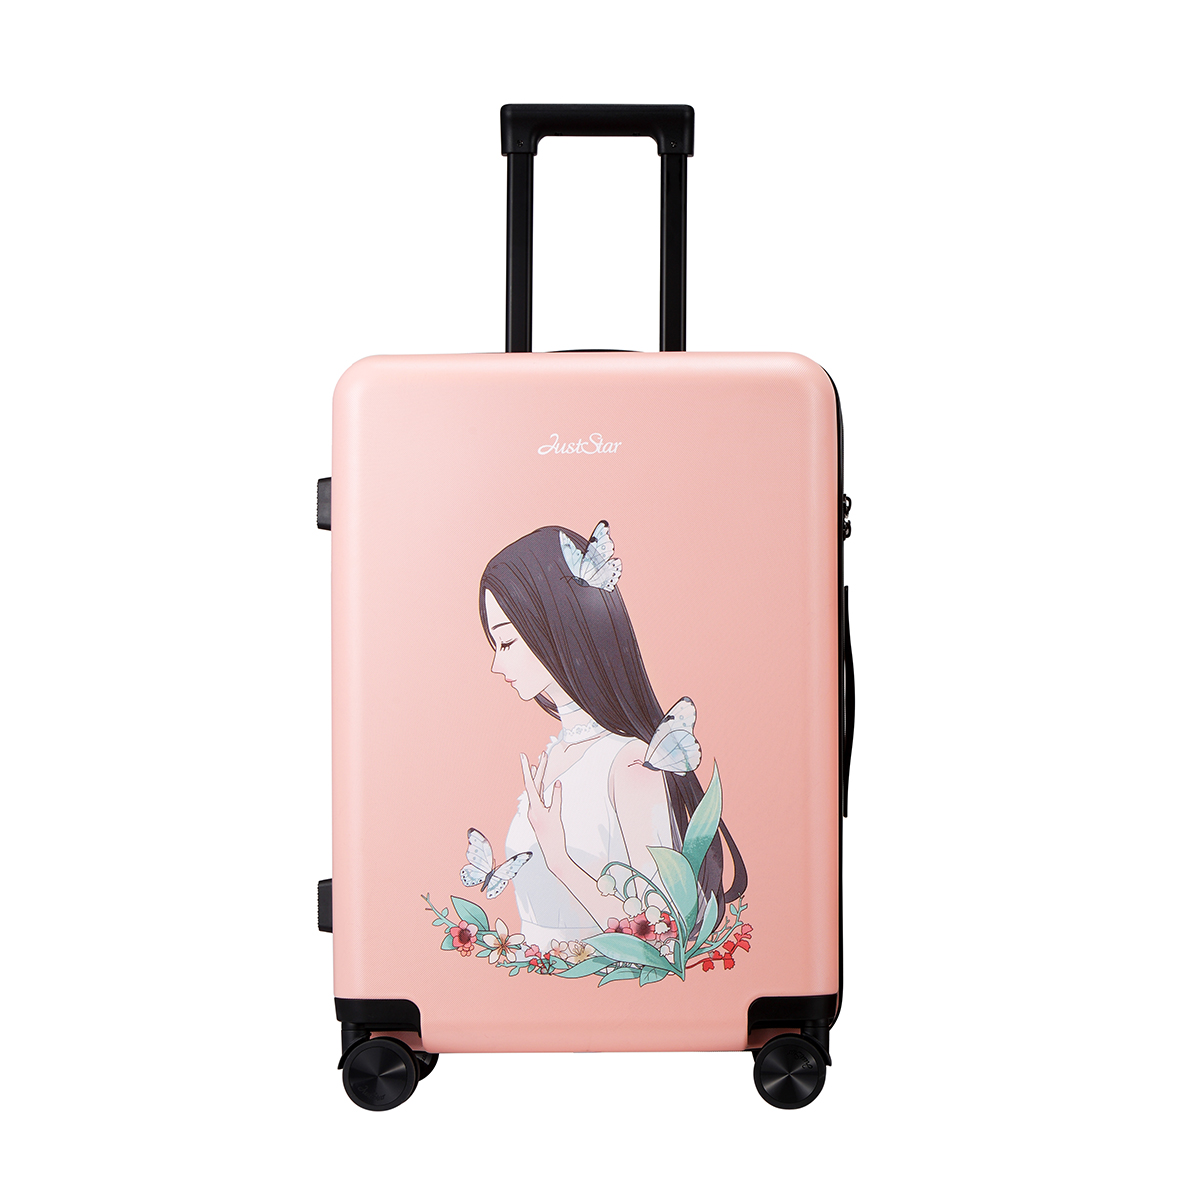 2017 Women Spinner trolley luggages TSA Lock Girls Rolling Luggage PC Hardside 20-Inch Trolley Travel case Boarding Luggage new 2024 inches business trolley case pc students travel luggage mute spinner rolling suitcase combination lock boarding box